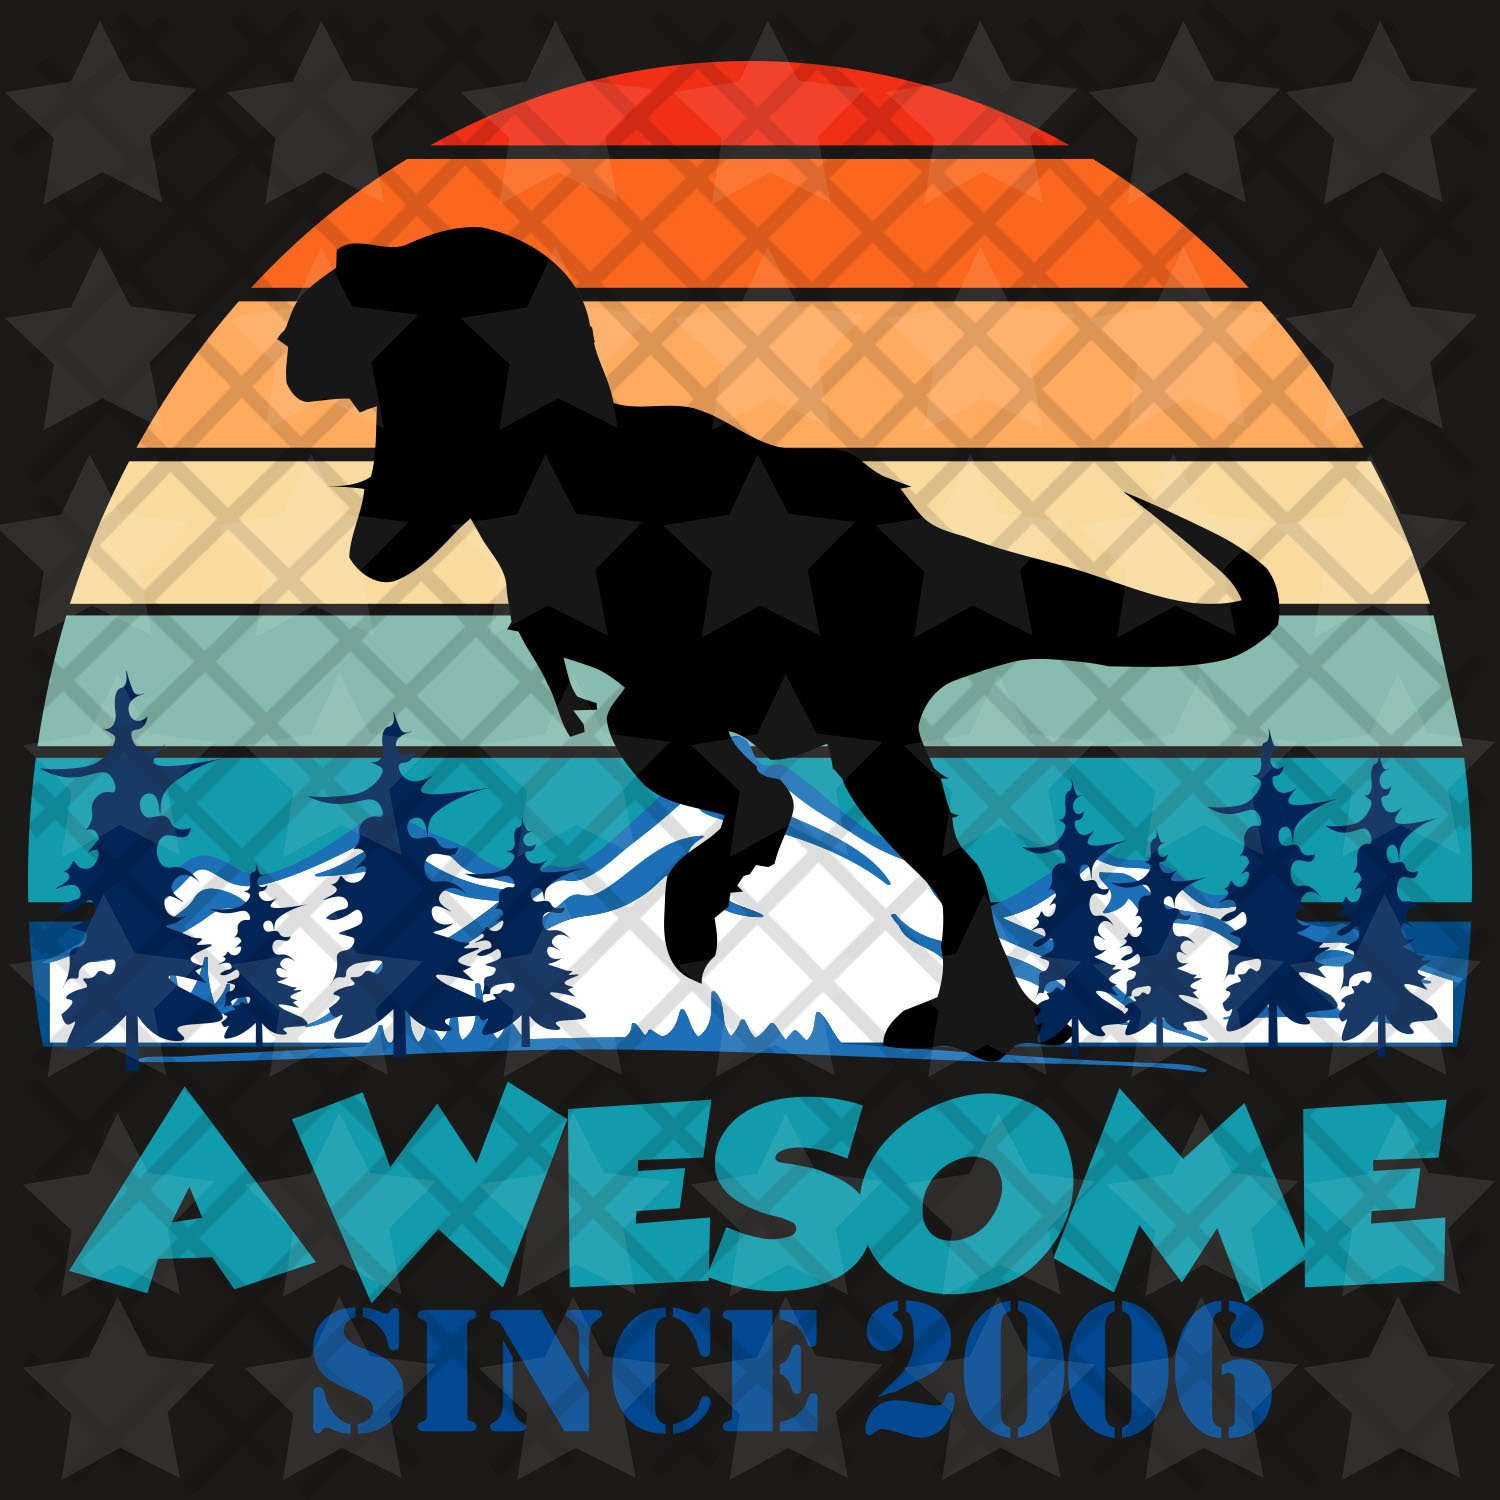 Awesome since 2006, you are awesome, vintage svg, born in 2006, 14th birthday, 14th birthday gift,  living my best life, birthday, birthday gift, files for silhouette, files for cricut, svg, dxf, eps, png, instant download